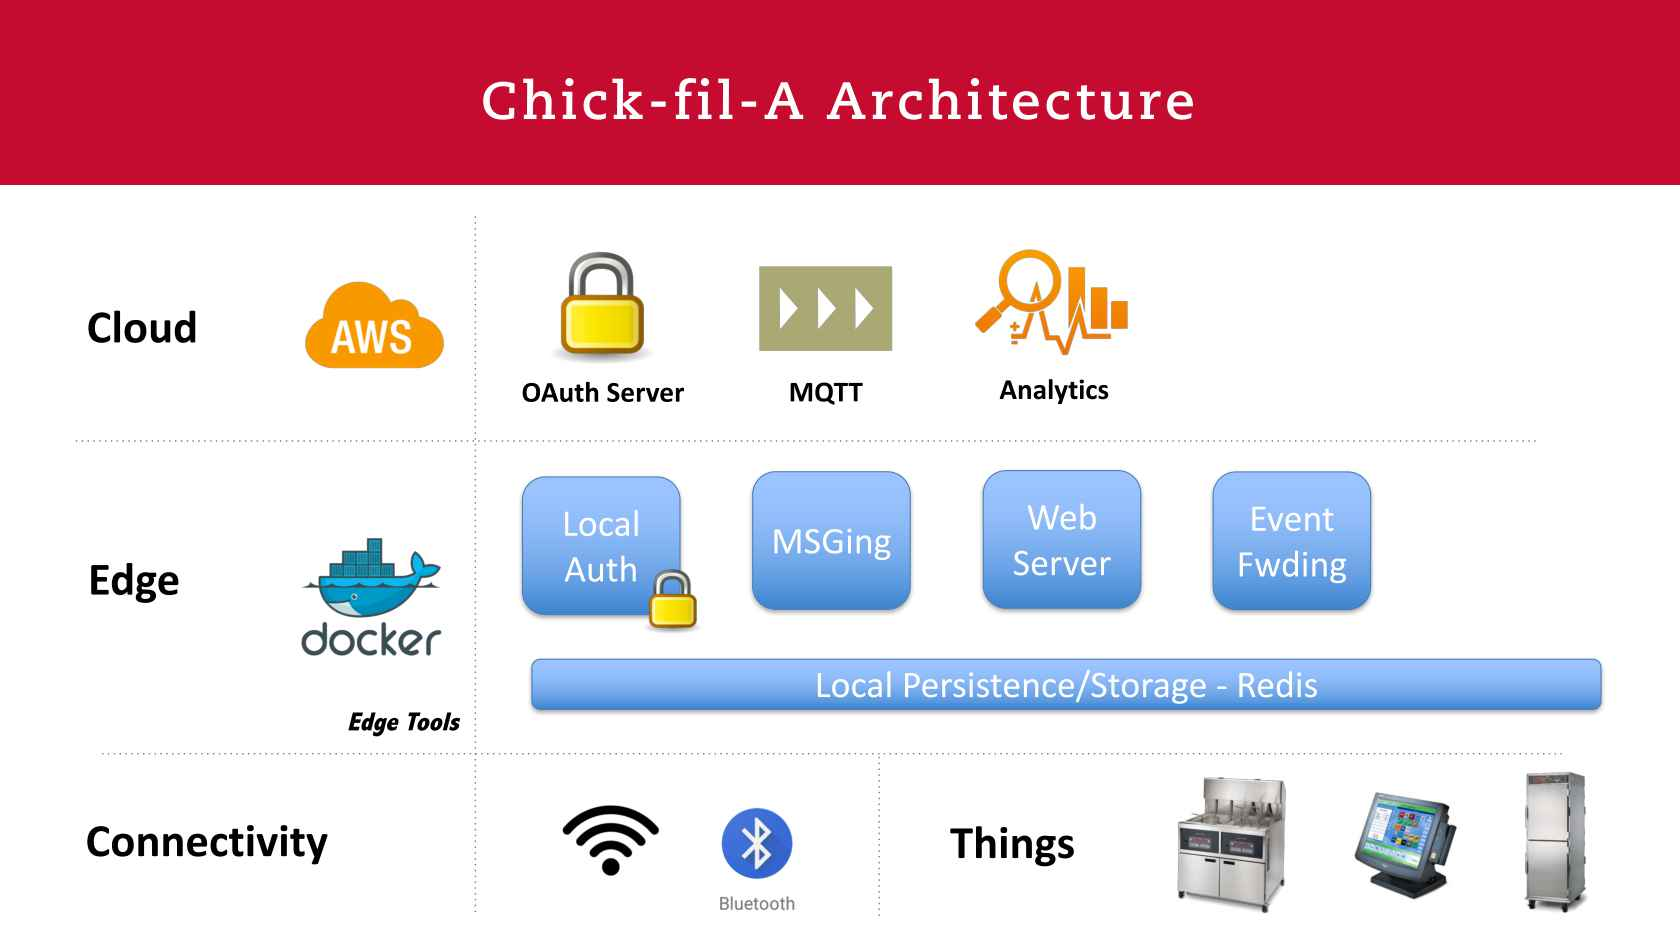 IOT and Edge Compute at Chick-fil-A